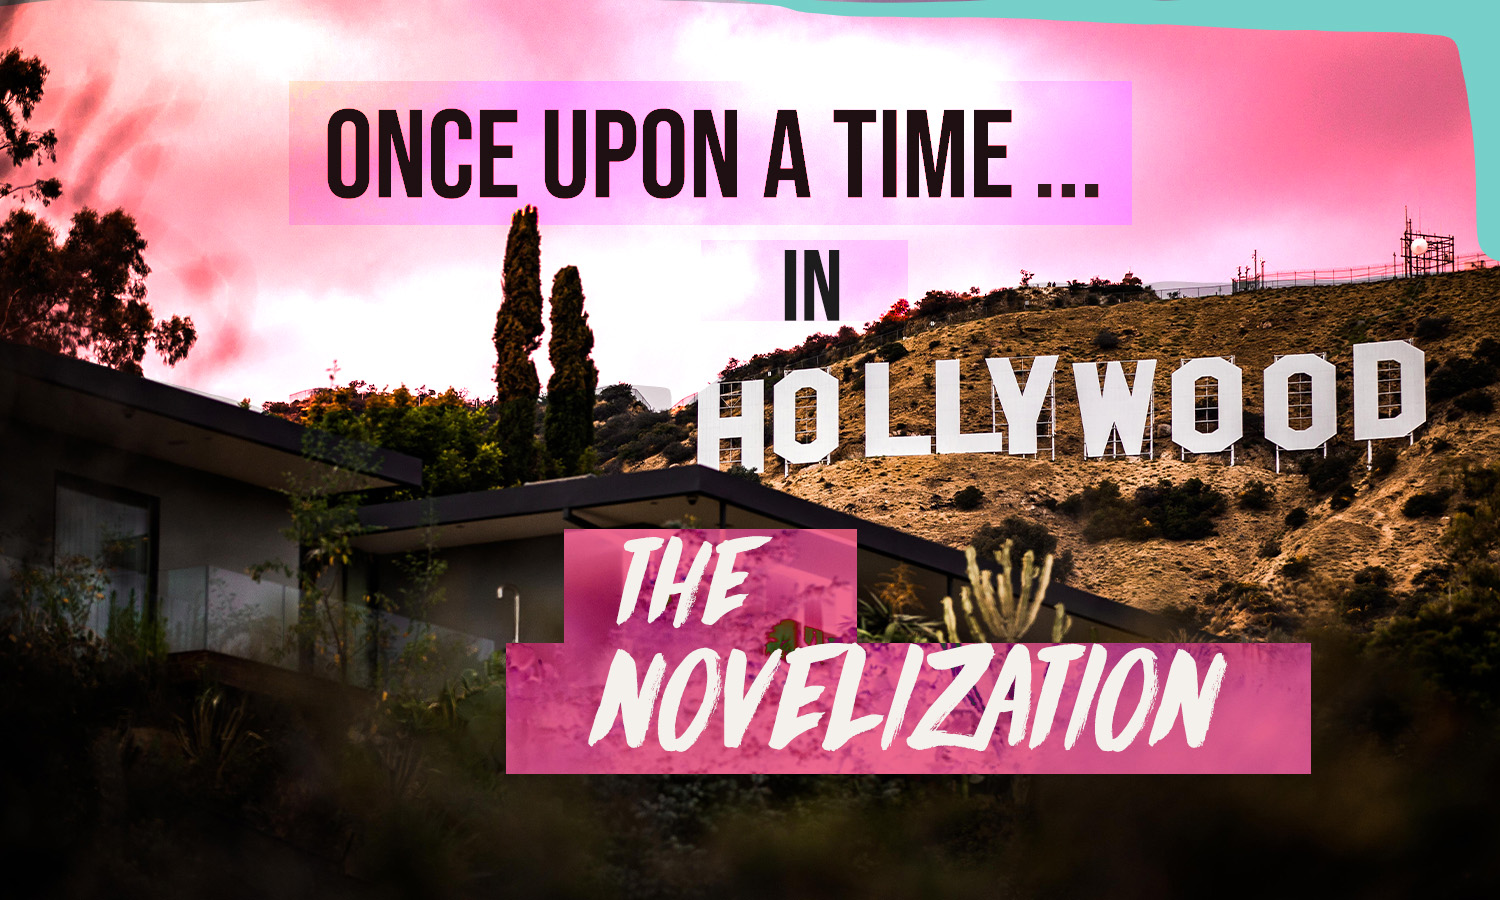 Once Upon a time in hollywood novelization